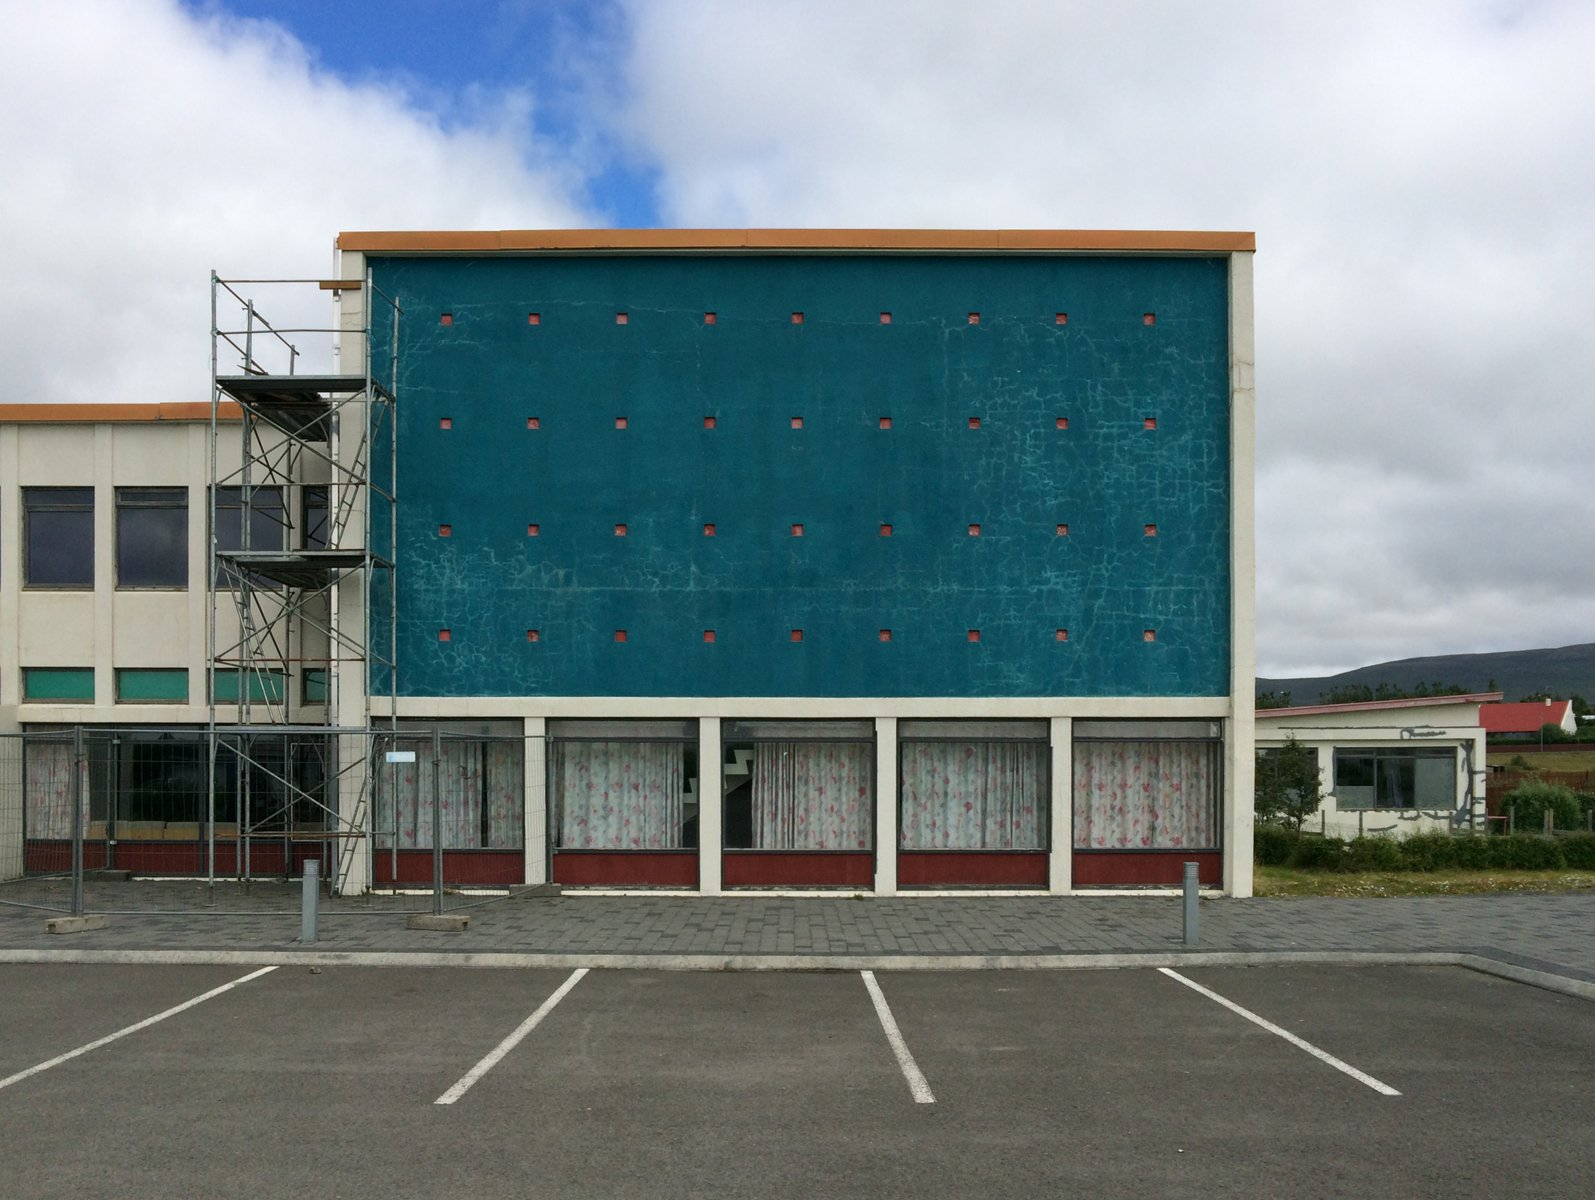 A commercial building with blank modernist turquoise facade and scaffolding.